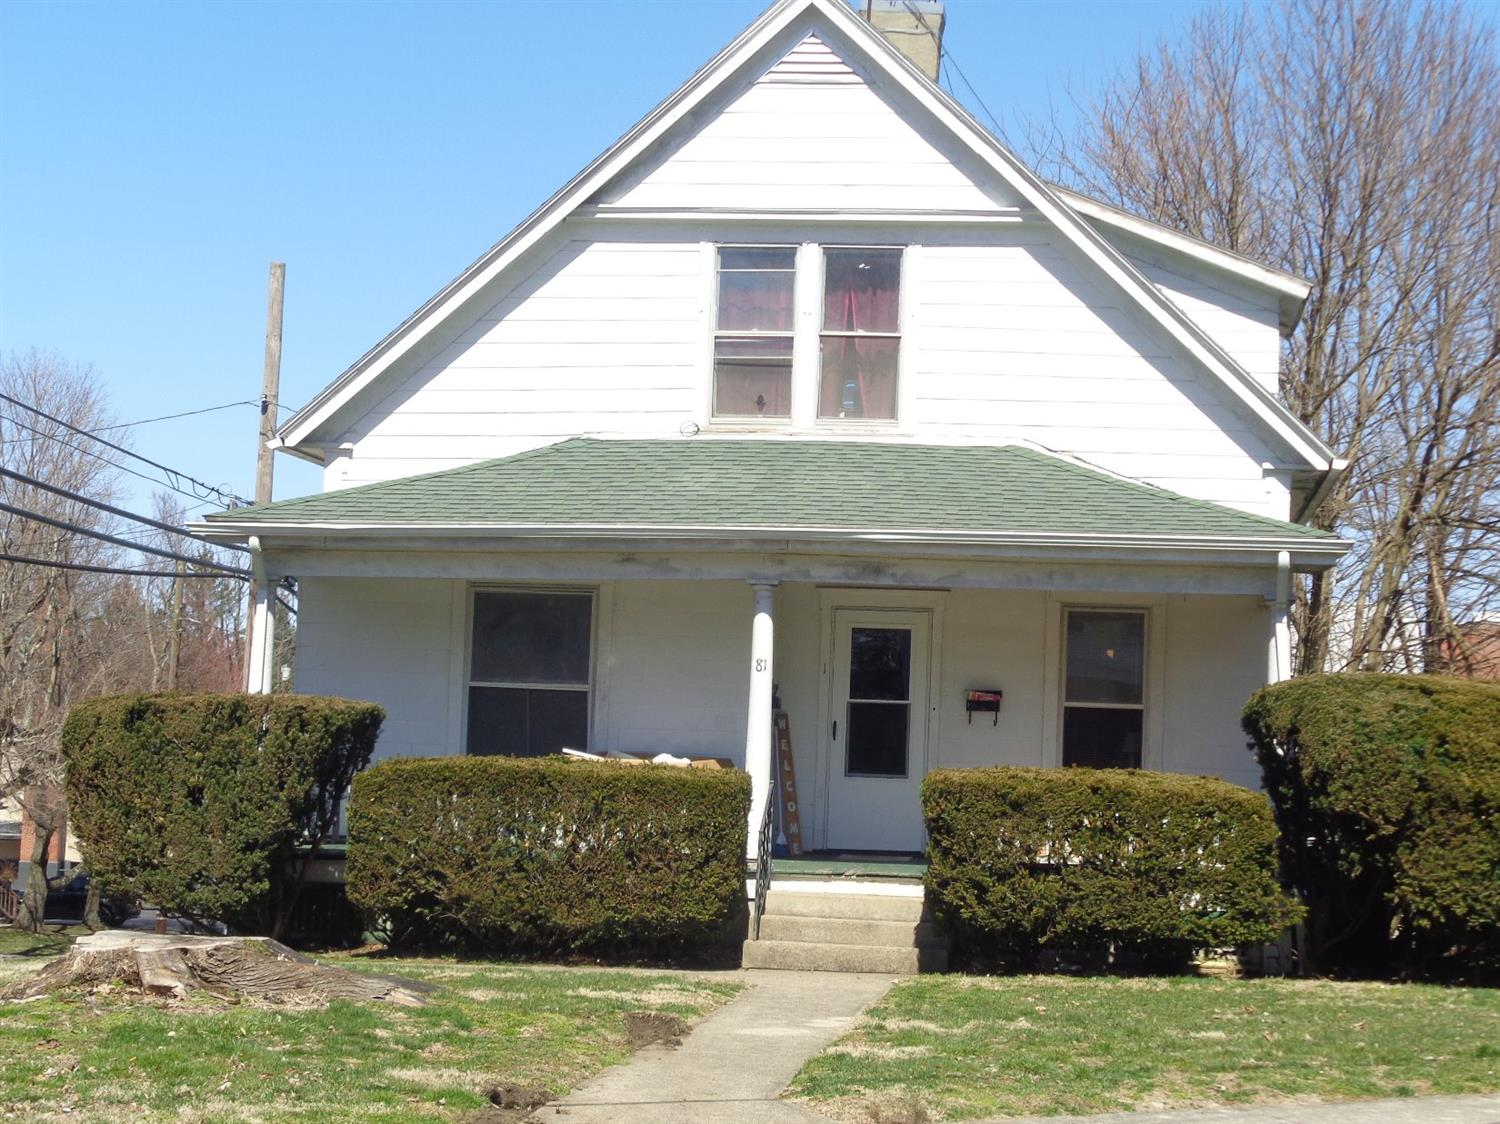 81 W Truesdell St, 1&2 Wilmington, OH